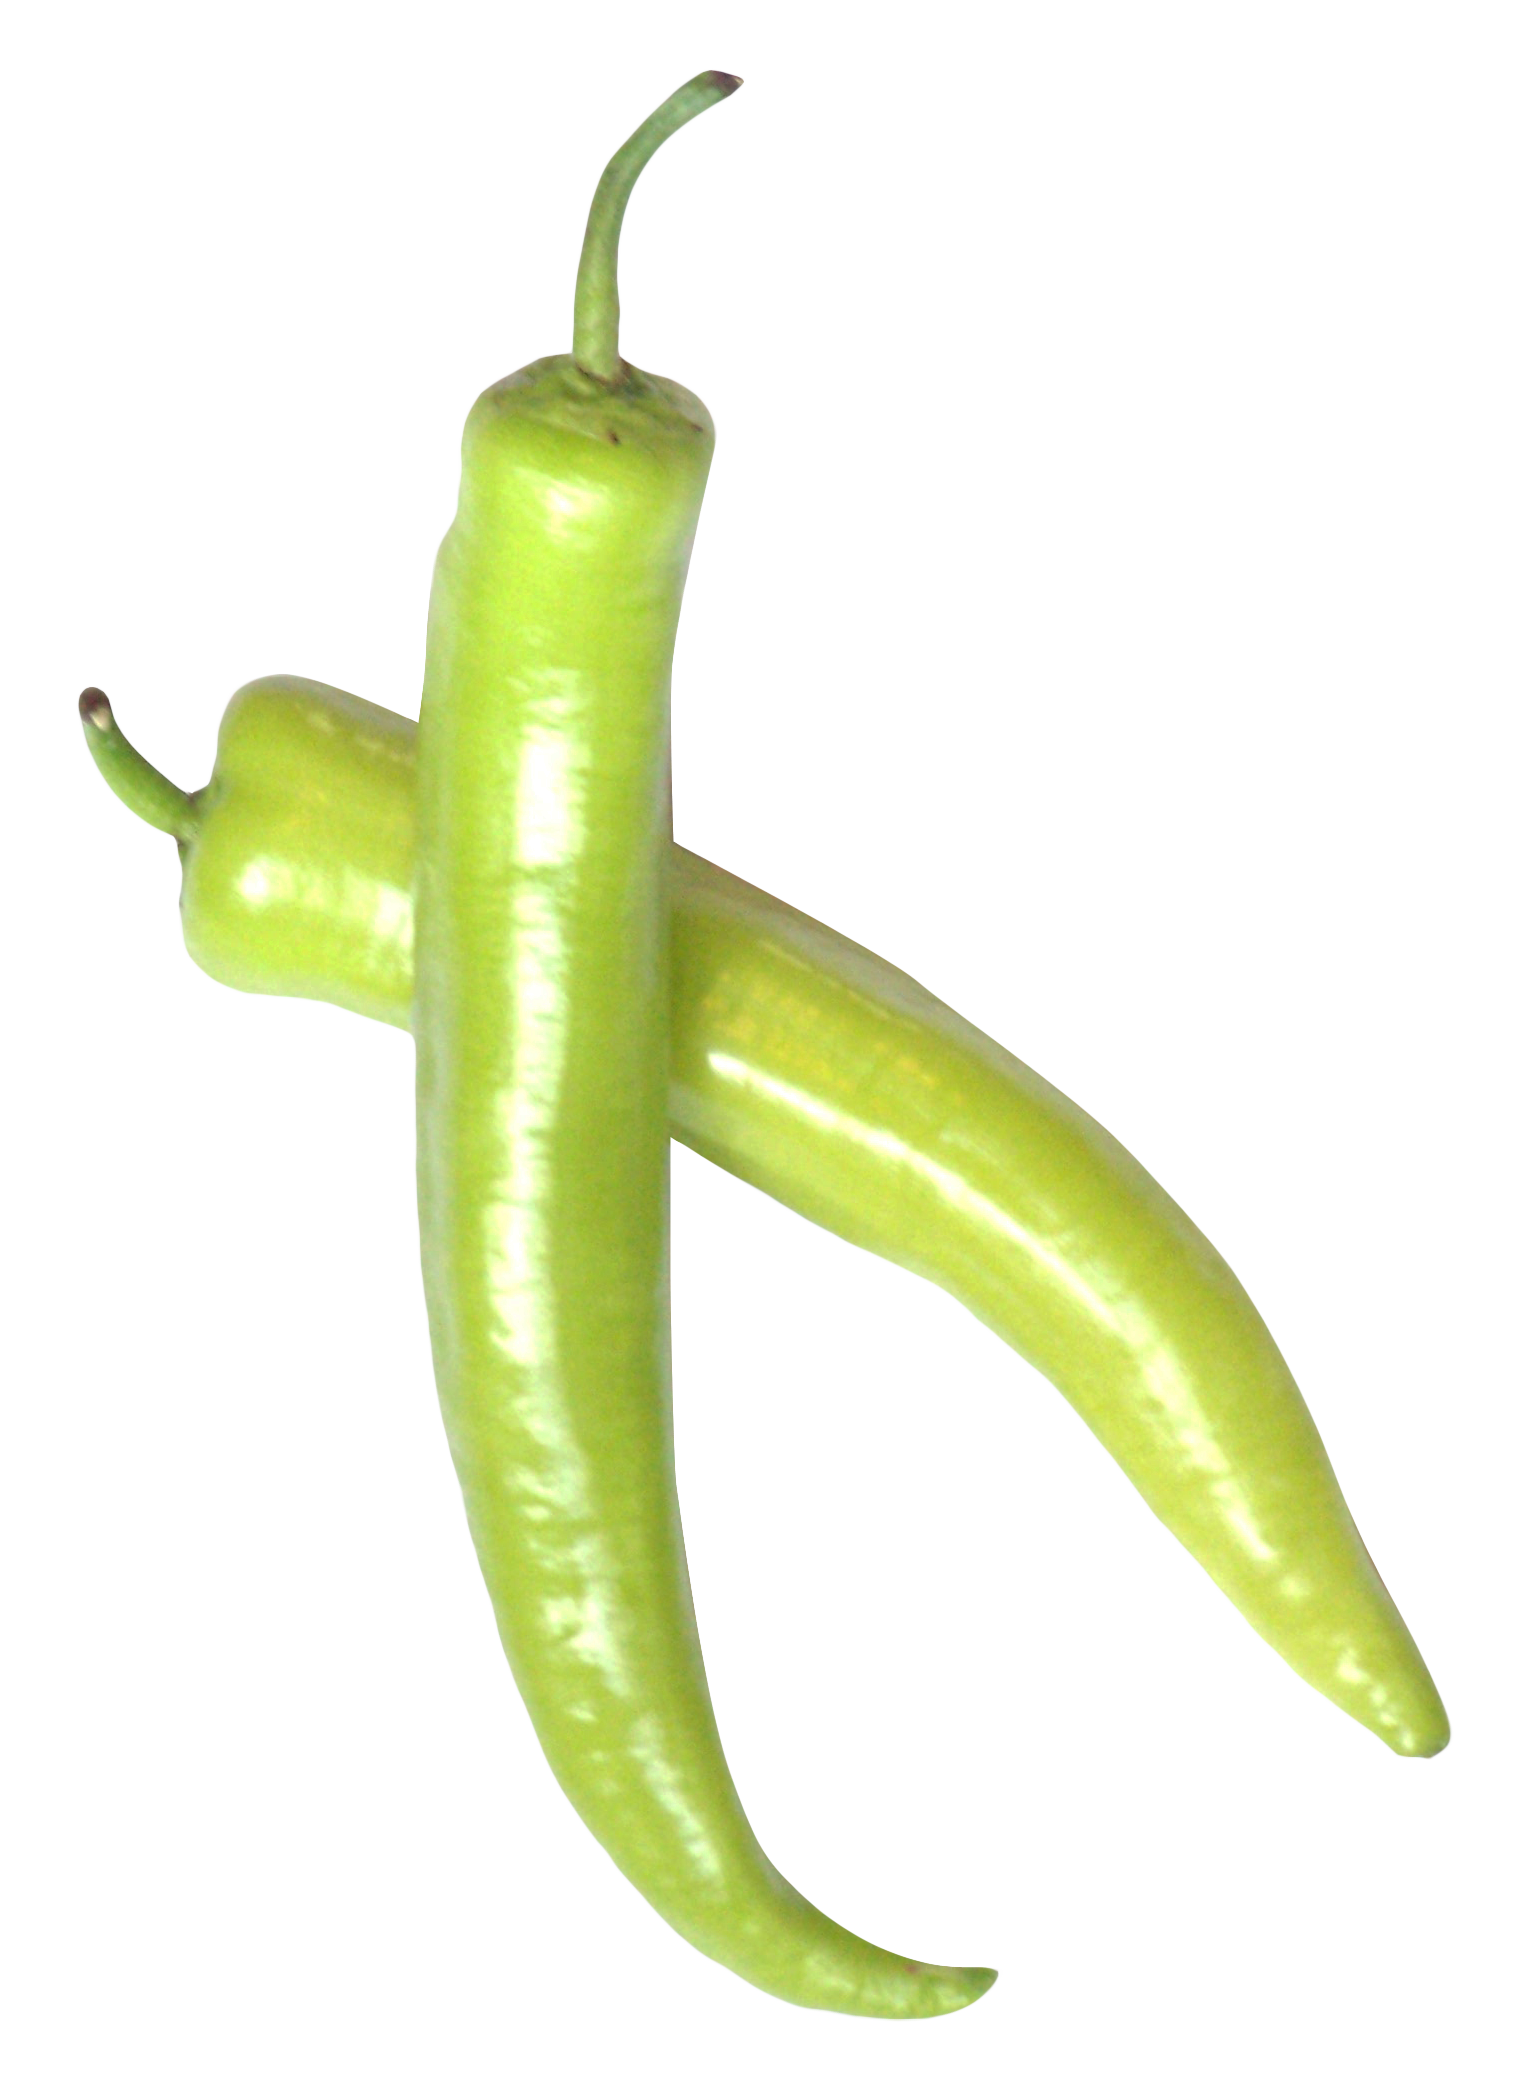 Png images pngpix green. Pepper clipart serrano pepper